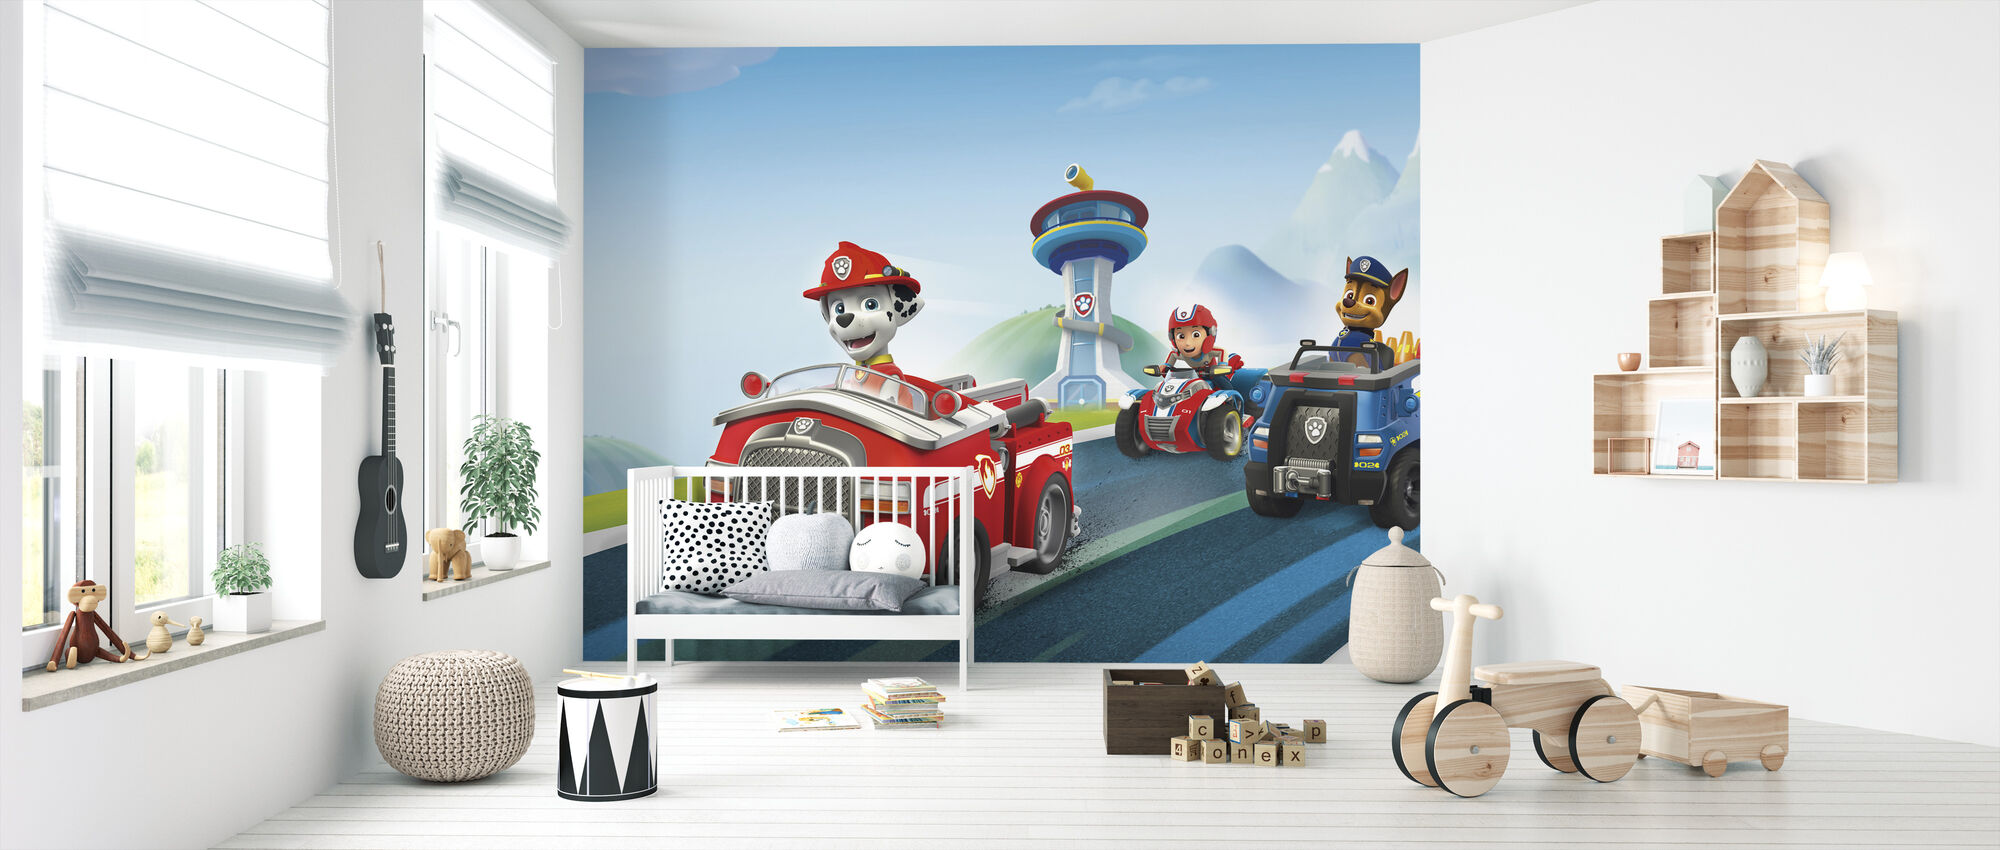 PAW Patrol - Ready for Action - Wallpaper - Nursery